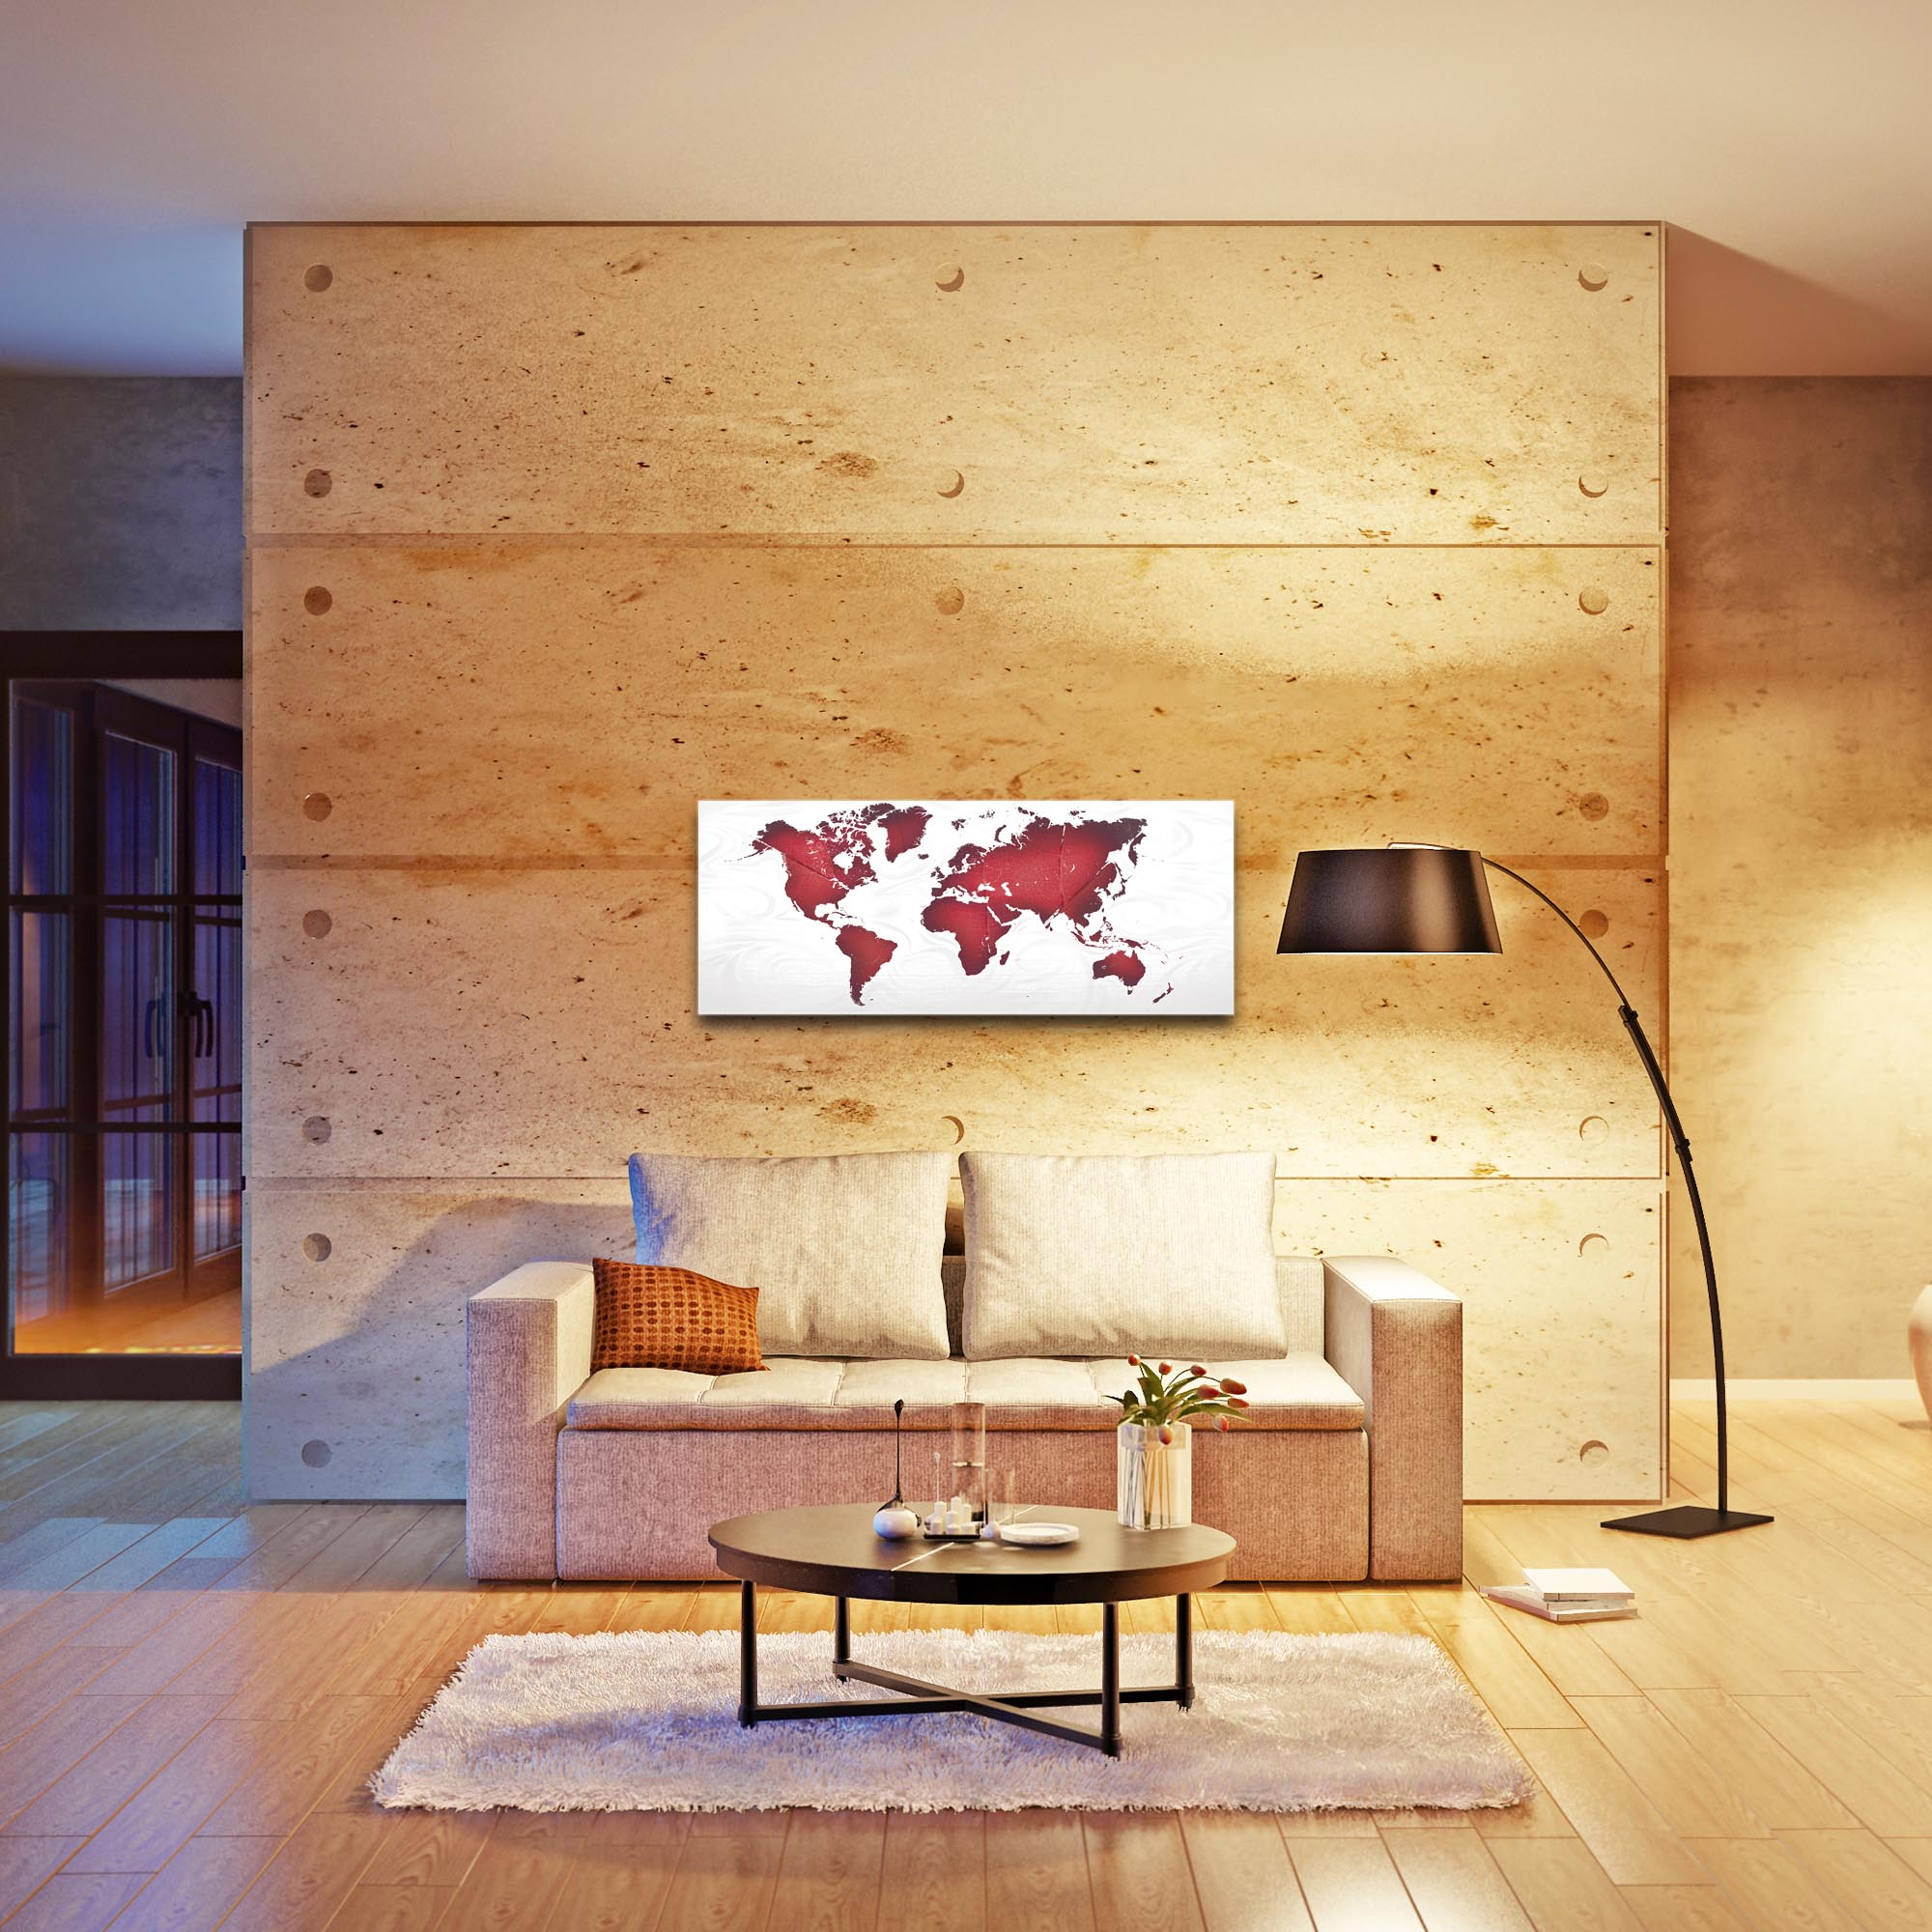 Abstract World Map 'Red White Land and Sea' - Urban Wall Art on Metal or Acrylic - Lifestyle View 2